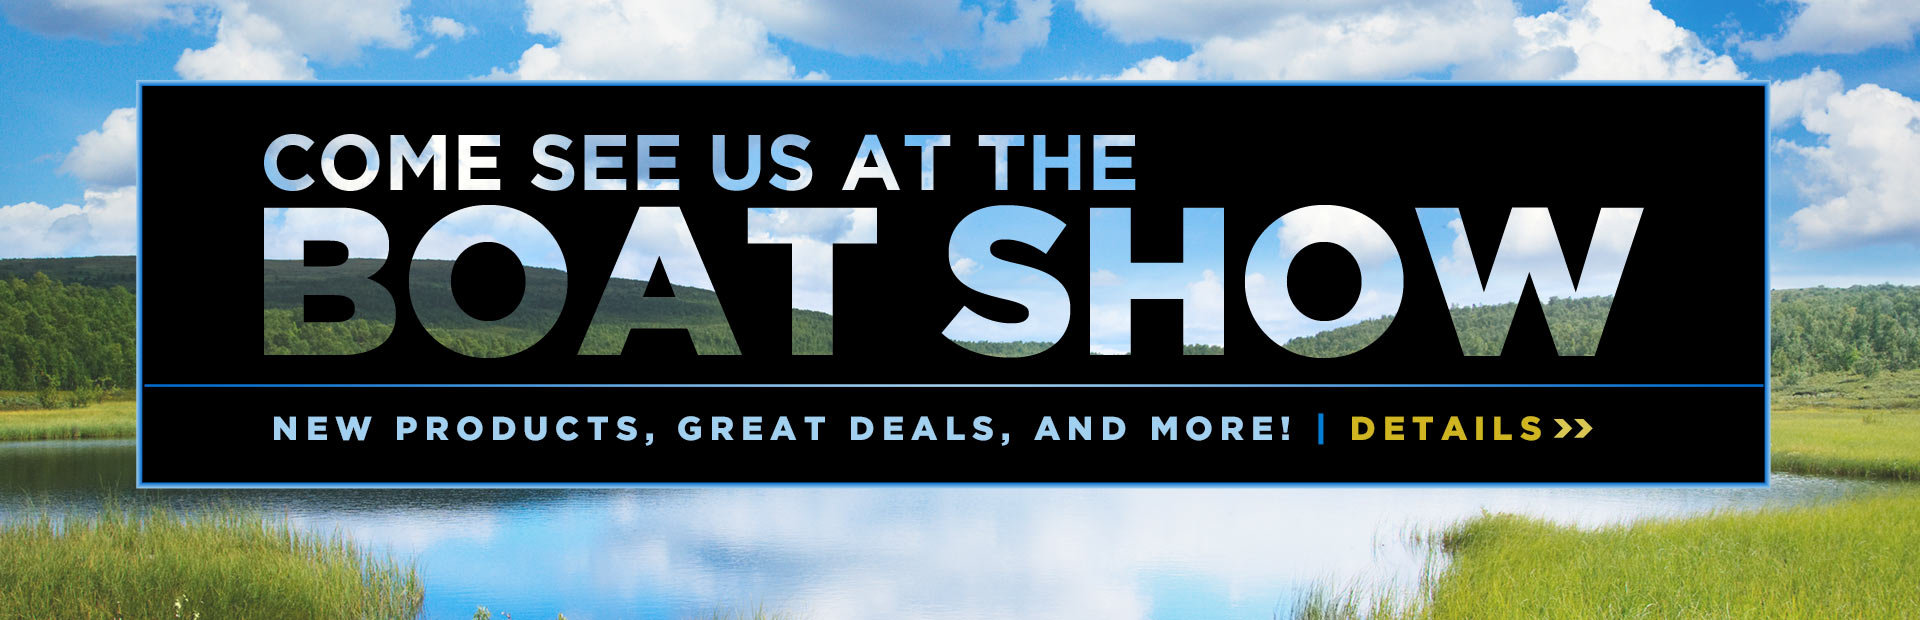 Come see us at the boat show! Click here for details.